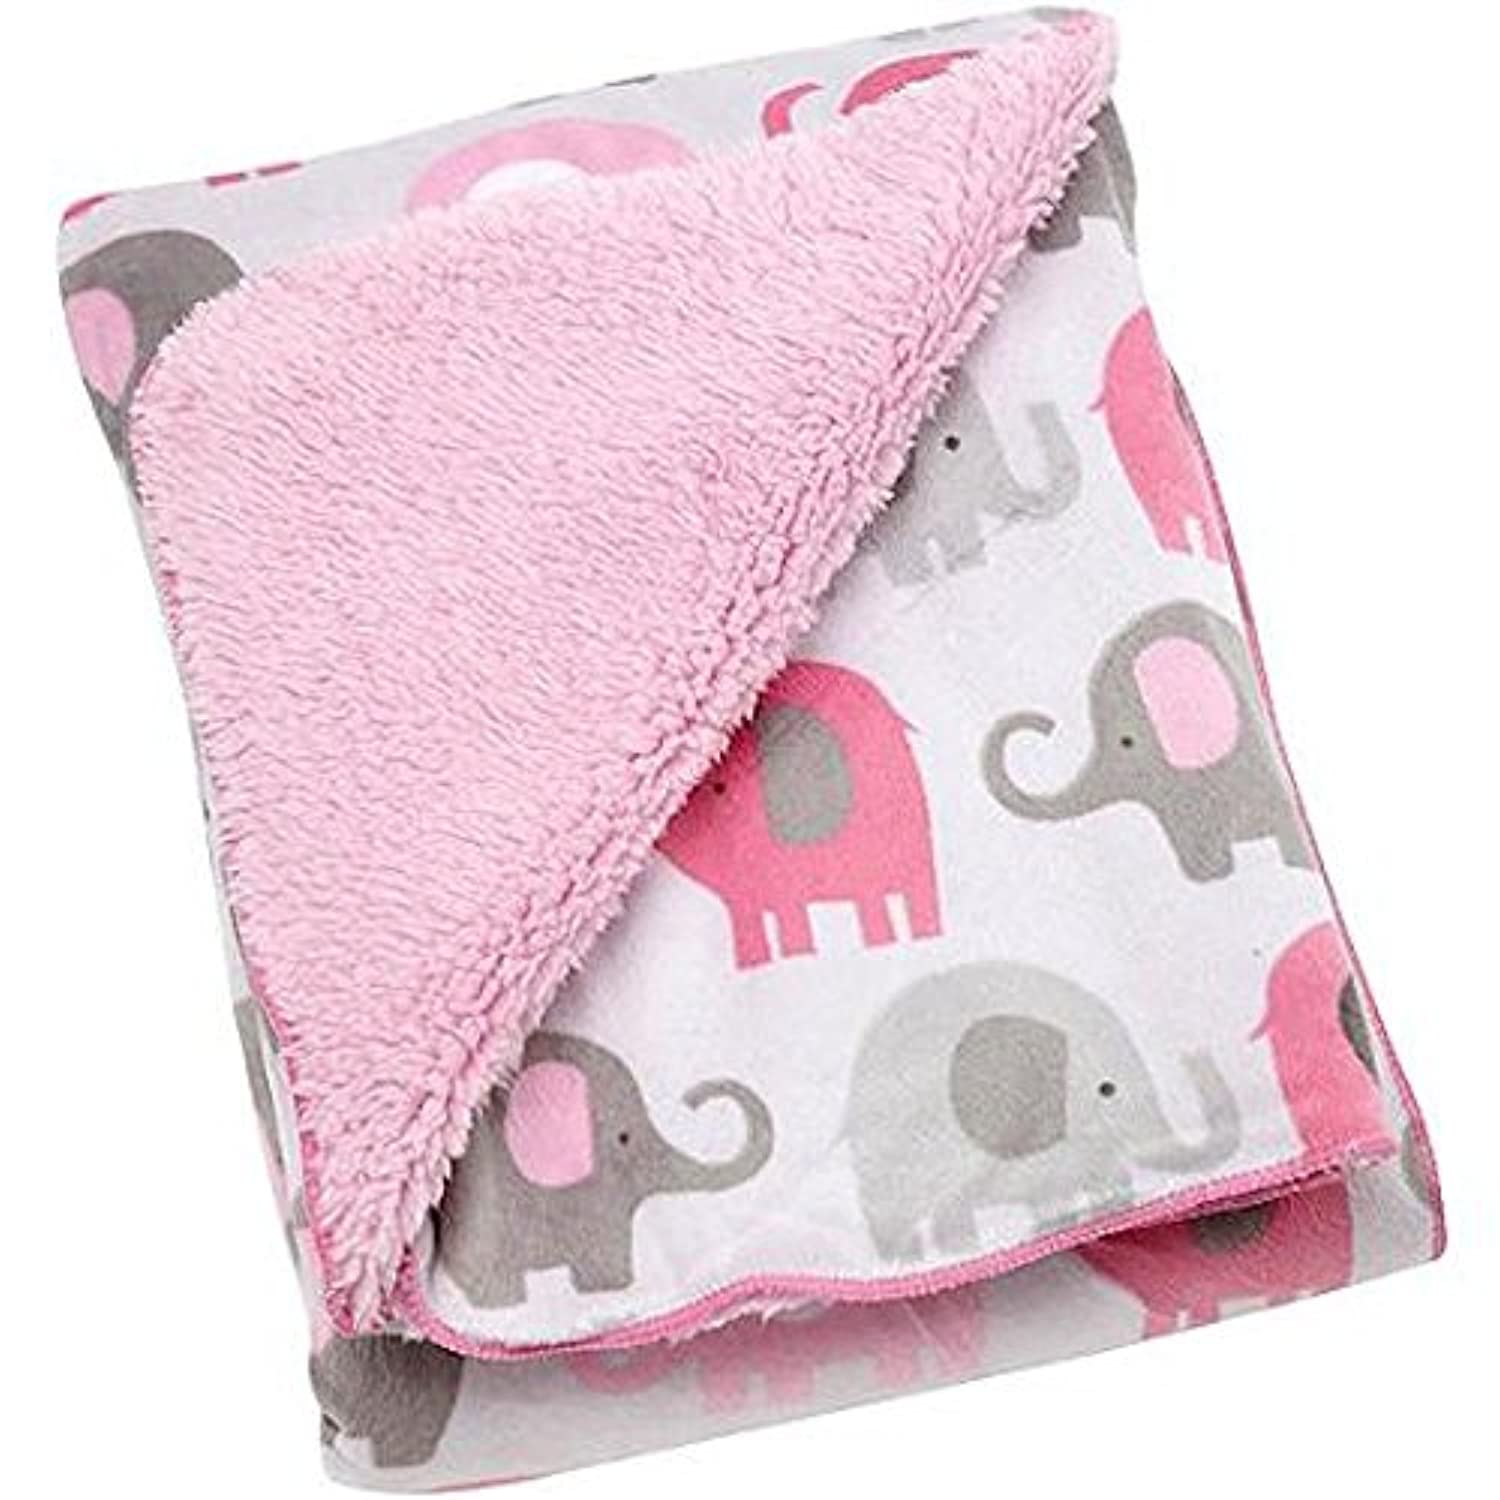 Baby Girl Soft Pink and Gray Elephant Blanket by NoJo